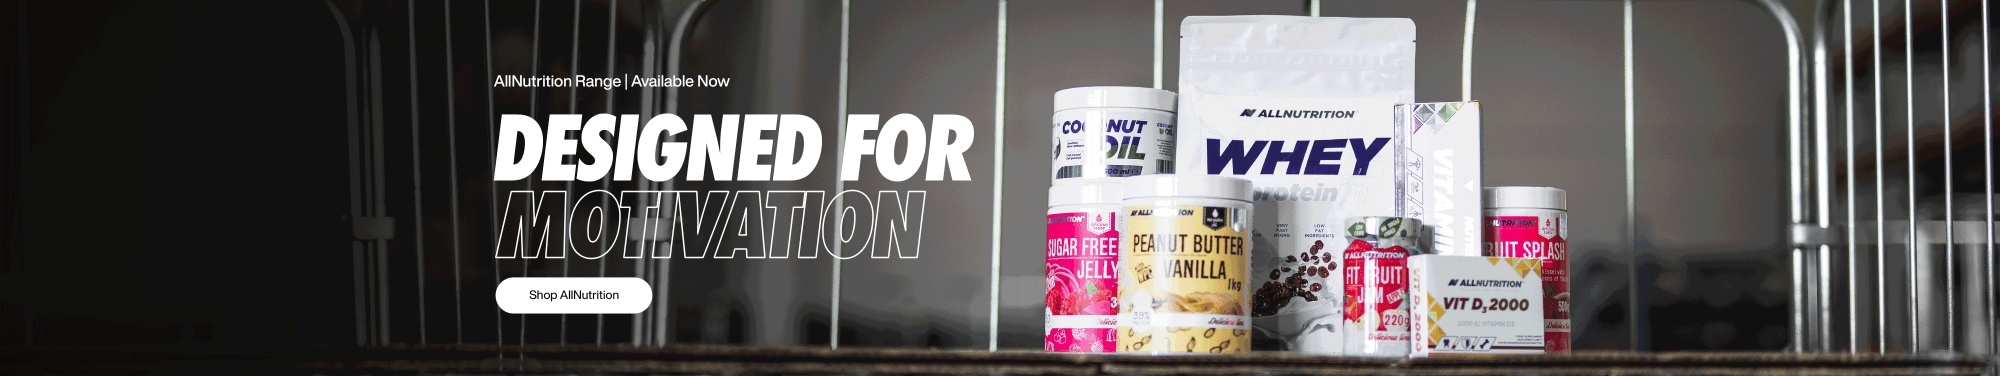 AllNutrition Now Available